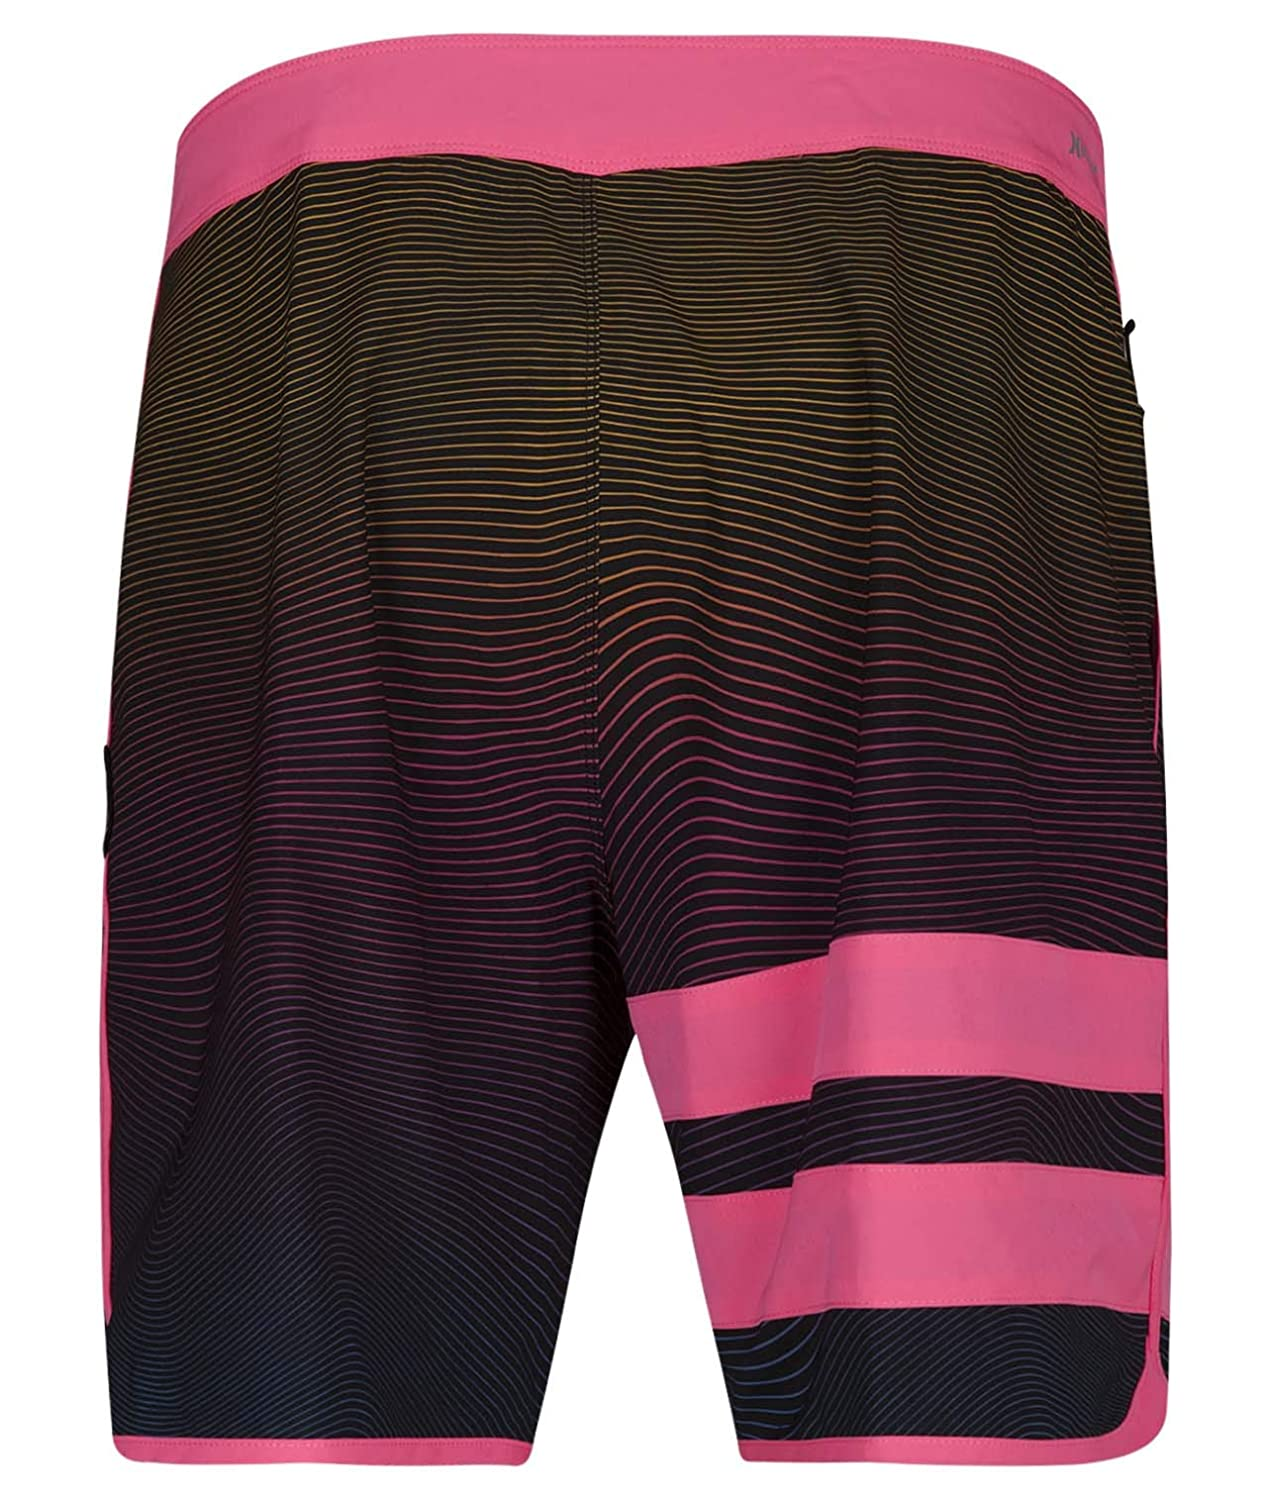 Static Block Men Phantom Hurley Boardshorts Party TJ1uFKc3l